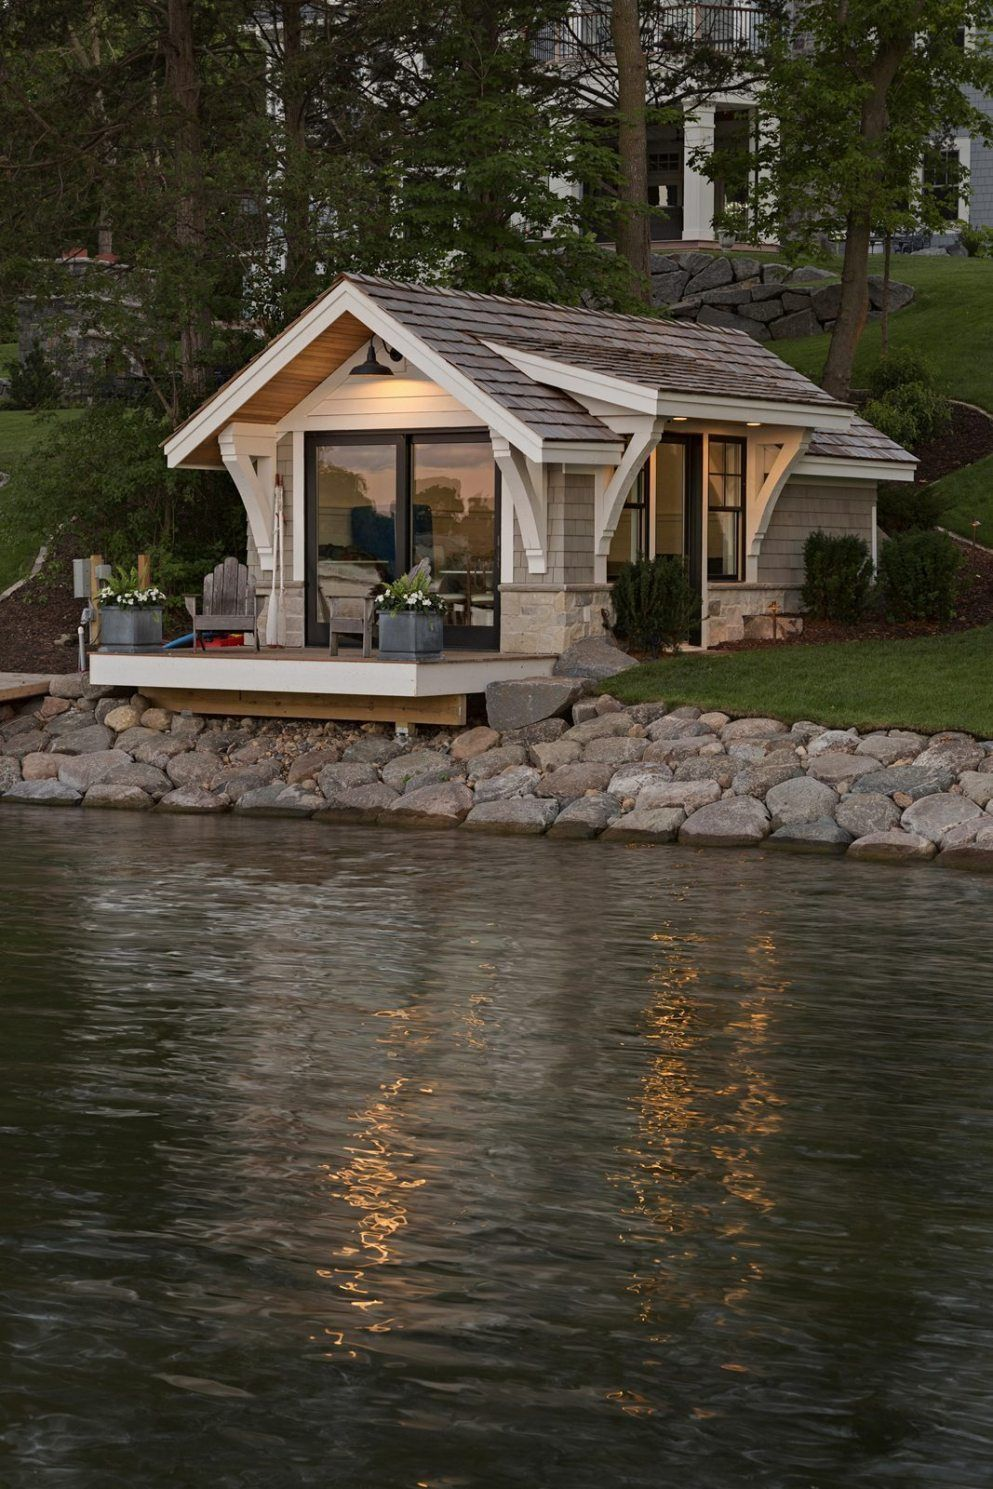 Dream Home Designs Ideas Now Enable S Locate 20 Remarkable Minimalist Houses Design Every One As Appeali Tiny House Cabin Tiny House Design Tiny House Plans